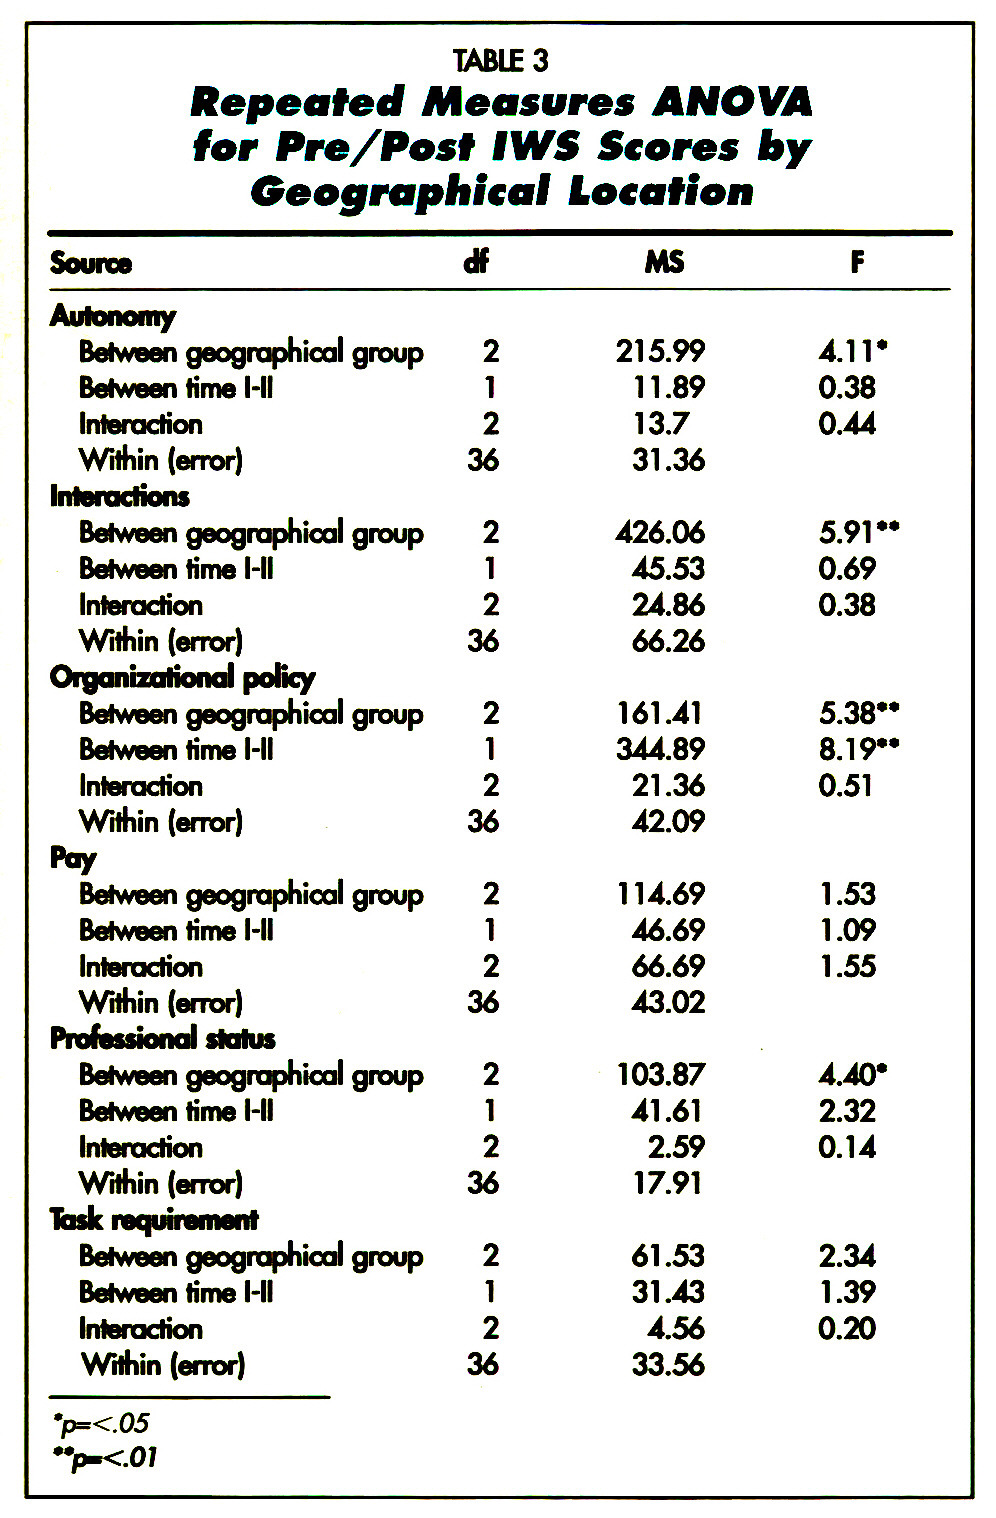 TABLE 3Repeated Measures ANOWI for Pre/Posf IWS Scores by Geographical Location